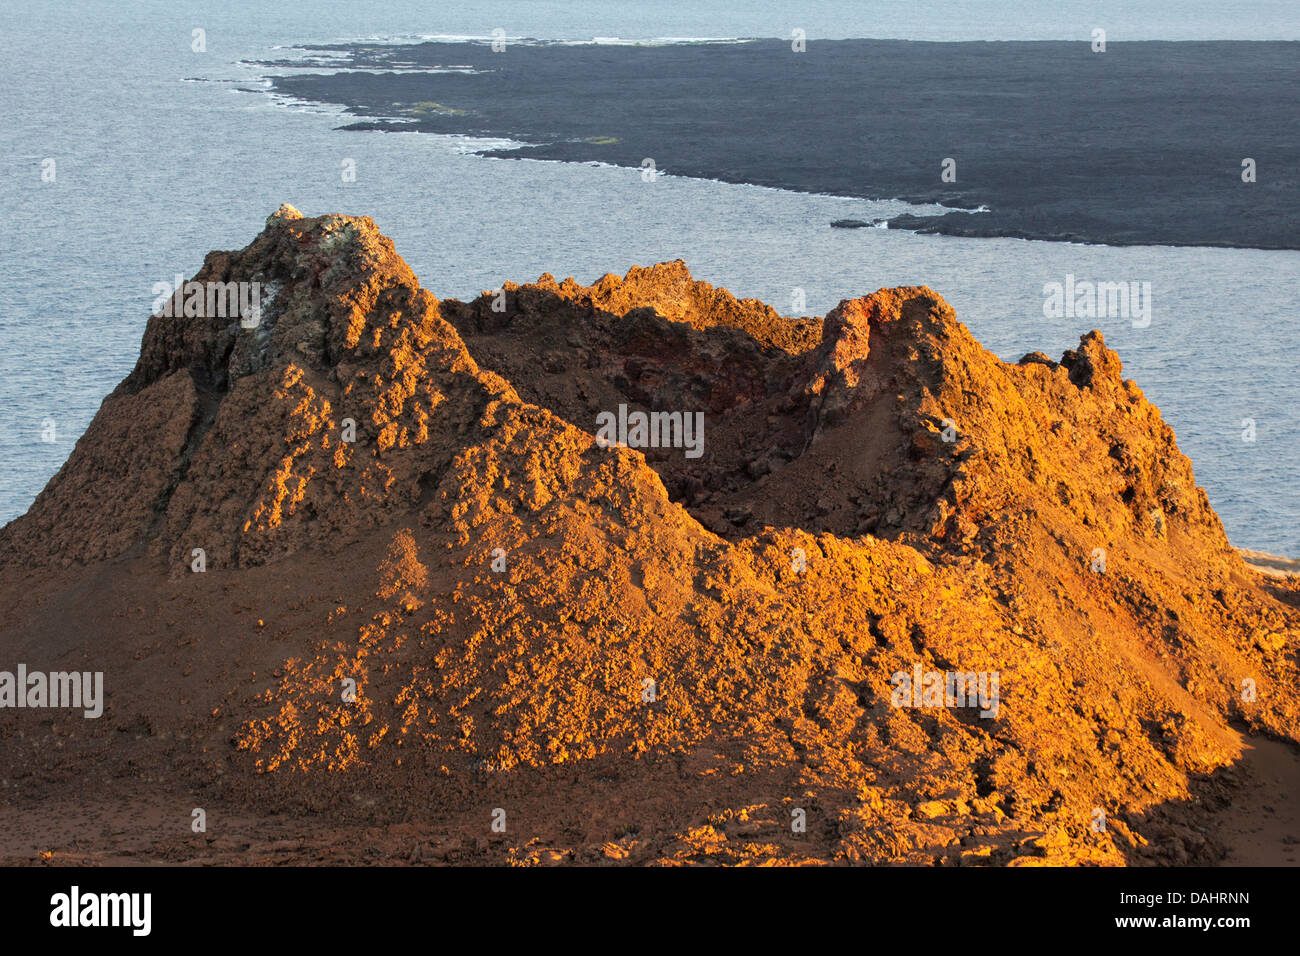 Eroded volcanic spatter cone (parasitic cone) - Stock Image